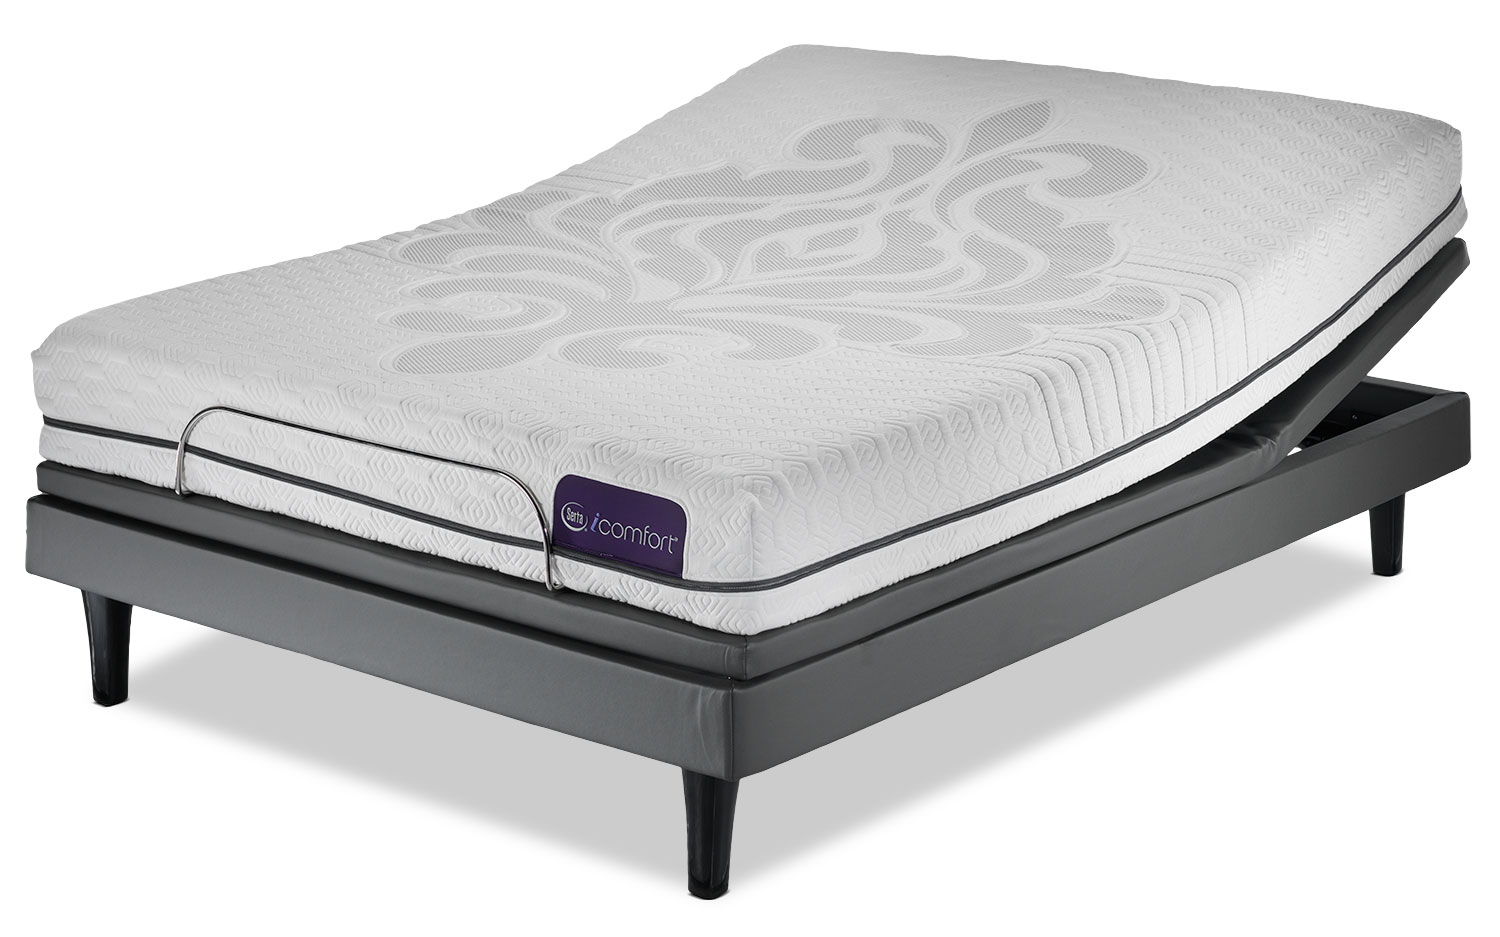 Serta Icomfort Eco Levity Firm Queen Mattress And Motion Perfect Iii Complete Adjustable Base